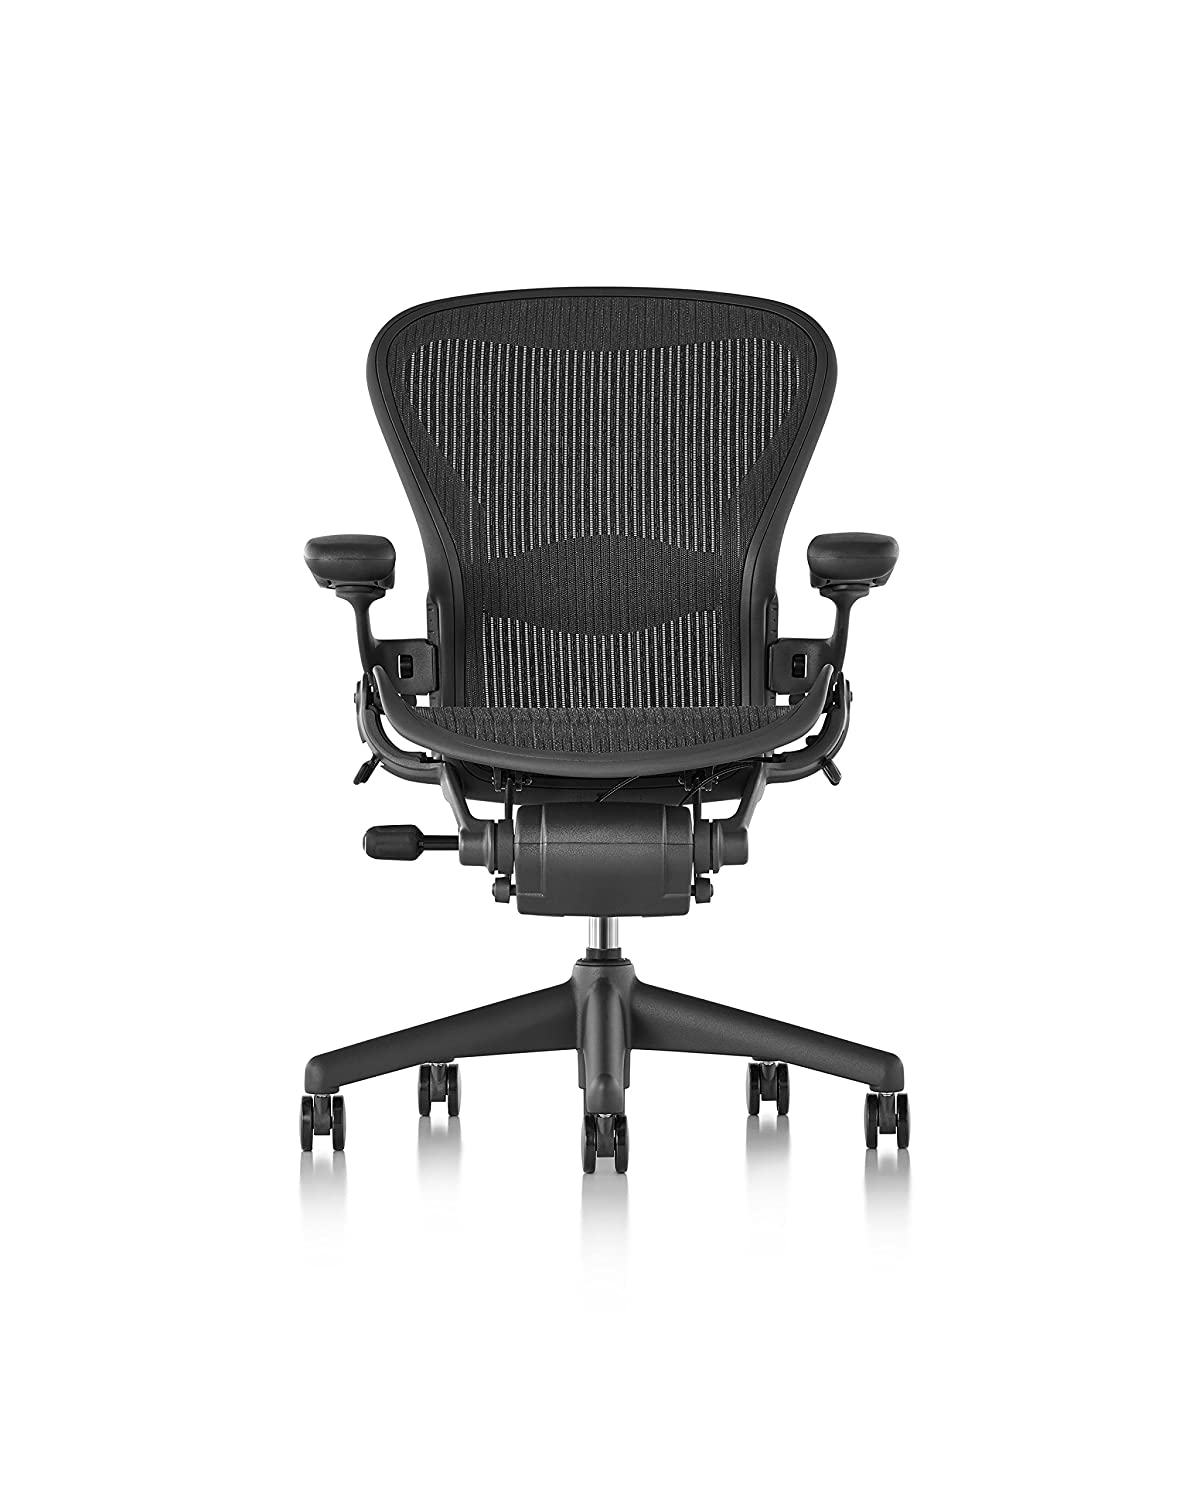 Amazon.com: Herman Miller Classic Aeron Chair   Fully Adjustable, B Size,  Adjustable Lumbar, Carpet Casters: Kitchen U0026 Dining